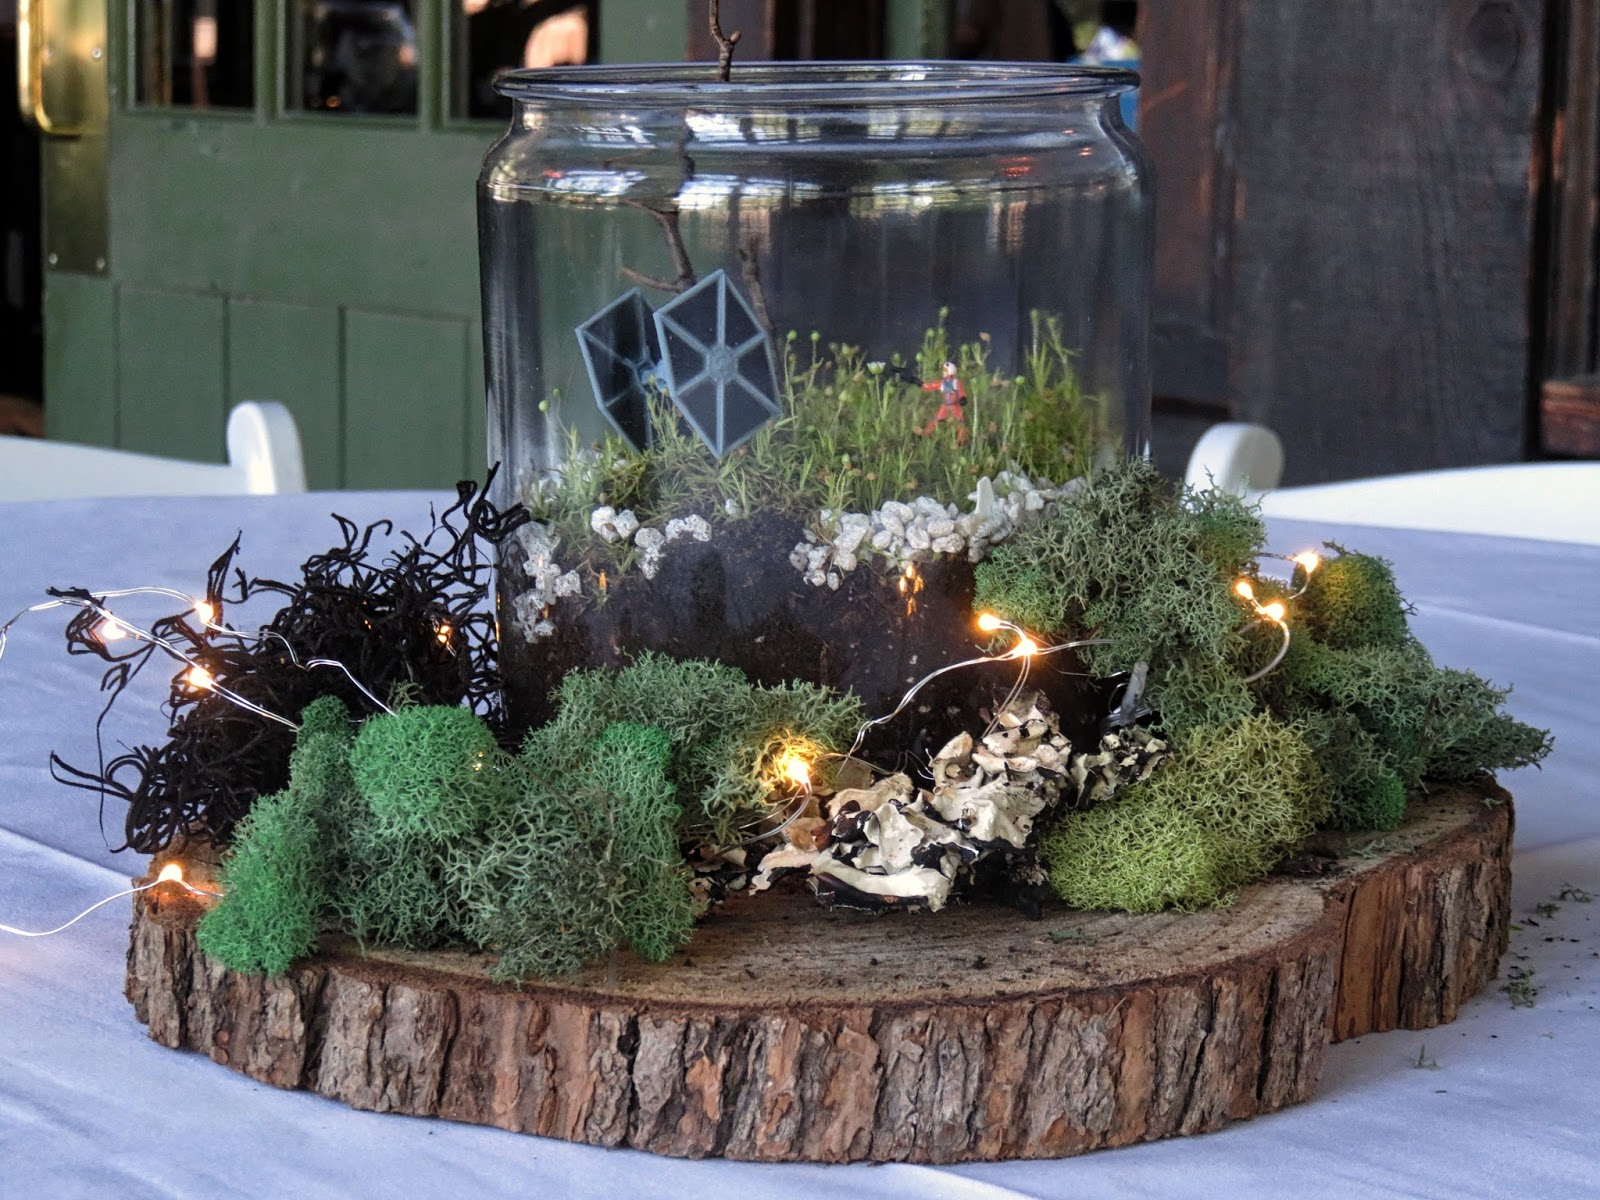 Chuck does art wedding centerpieces diy rustic terrariums with i was recently asked allowed more like to help make centerpieces for one of my best friends wedding we made simple glass terrariums and accented them junglespirit Gallery